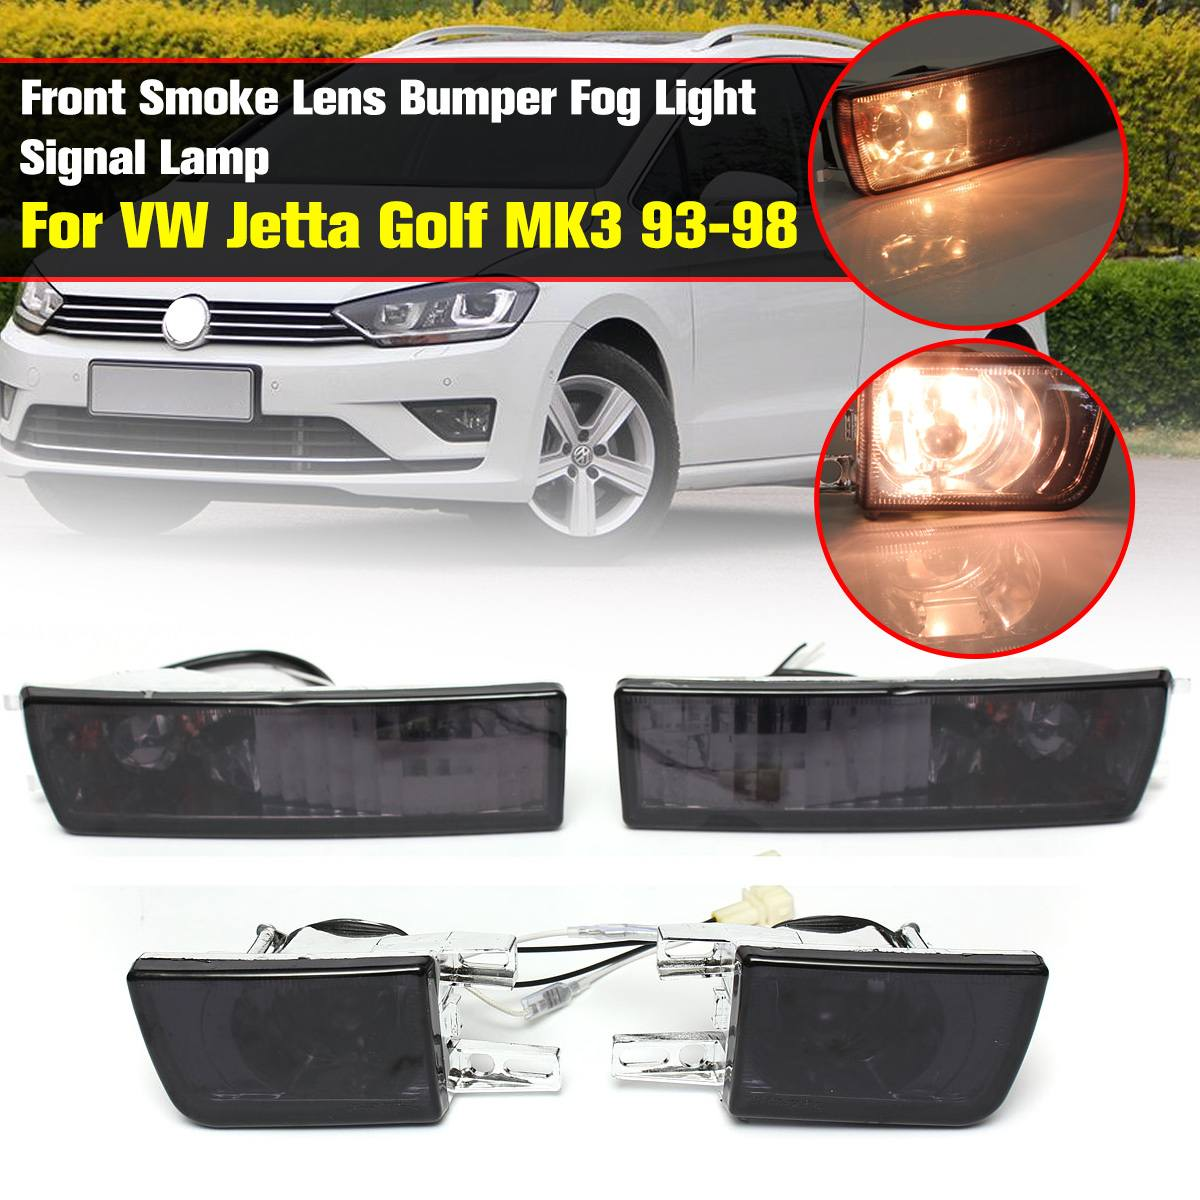 12V 21W Front Smoked Lens Fog <font><b>Light</b></font> Corner Signal <font><b>Light</b></font> for <font><b>VW</b></font> <font><b>Golf</b></font> <font><b>Mk3</b></font> for Jetta Vento 1993-1998 for <font><b>light</b></font> with 2pins connector image